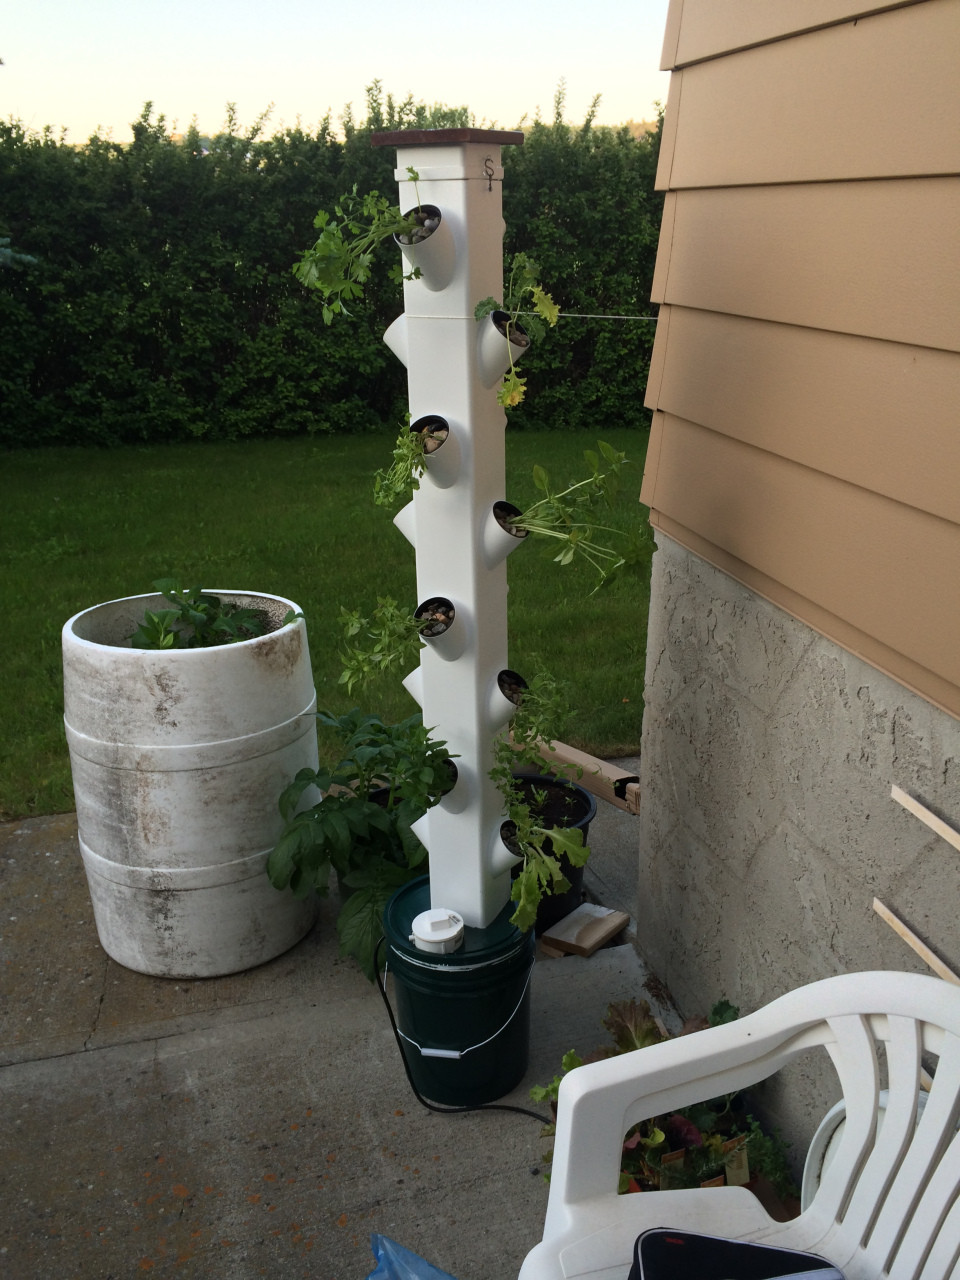 Best ideas about Hydroponic Tower Garden DIY . Save or Pin Hydroponic Tower Garden Part 4 Final Now.